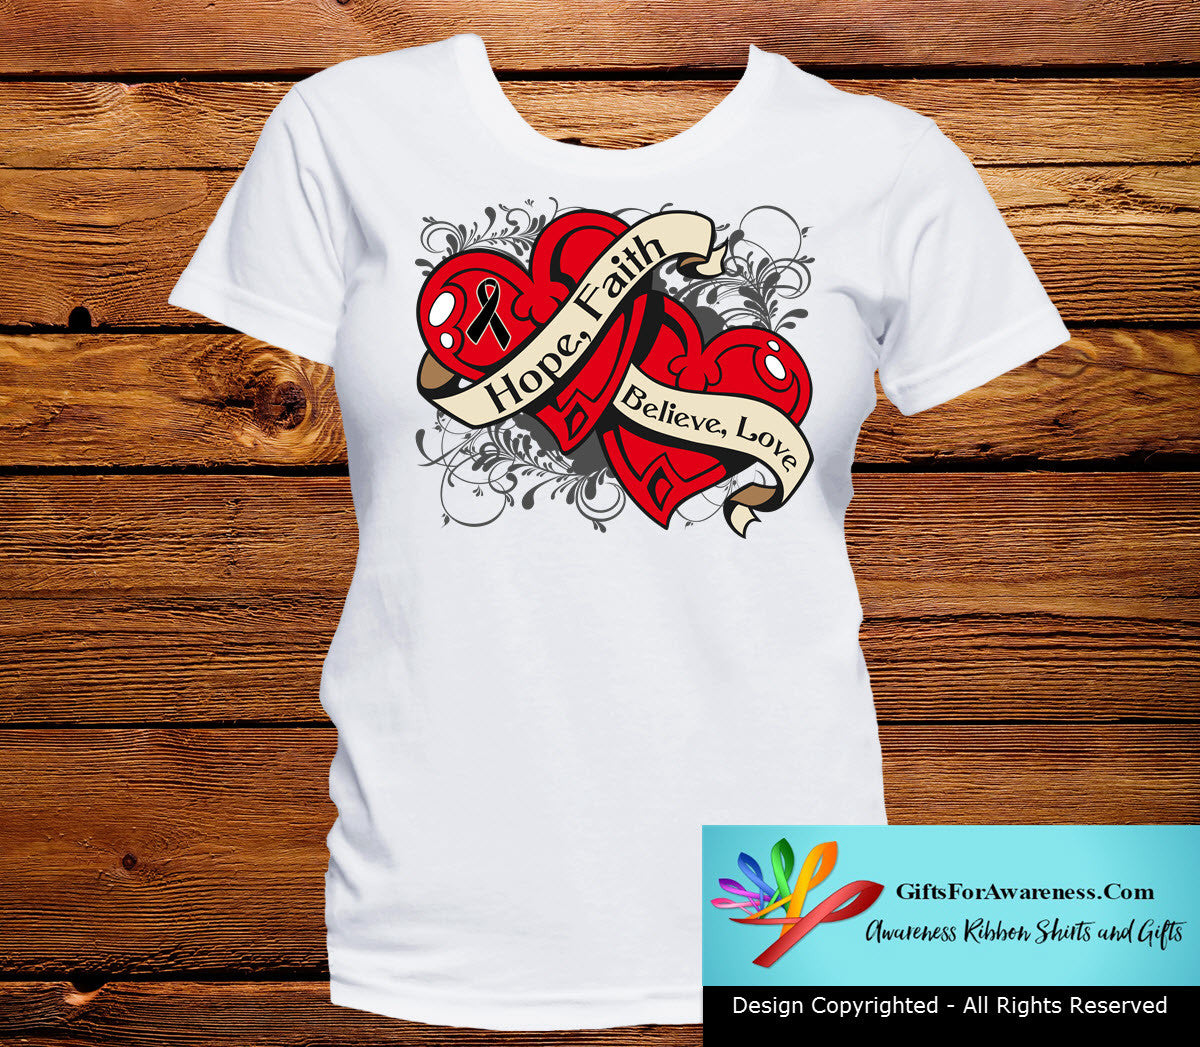 Melanoma Hope Believe Faith Love Shirts - GiftsForAwareness